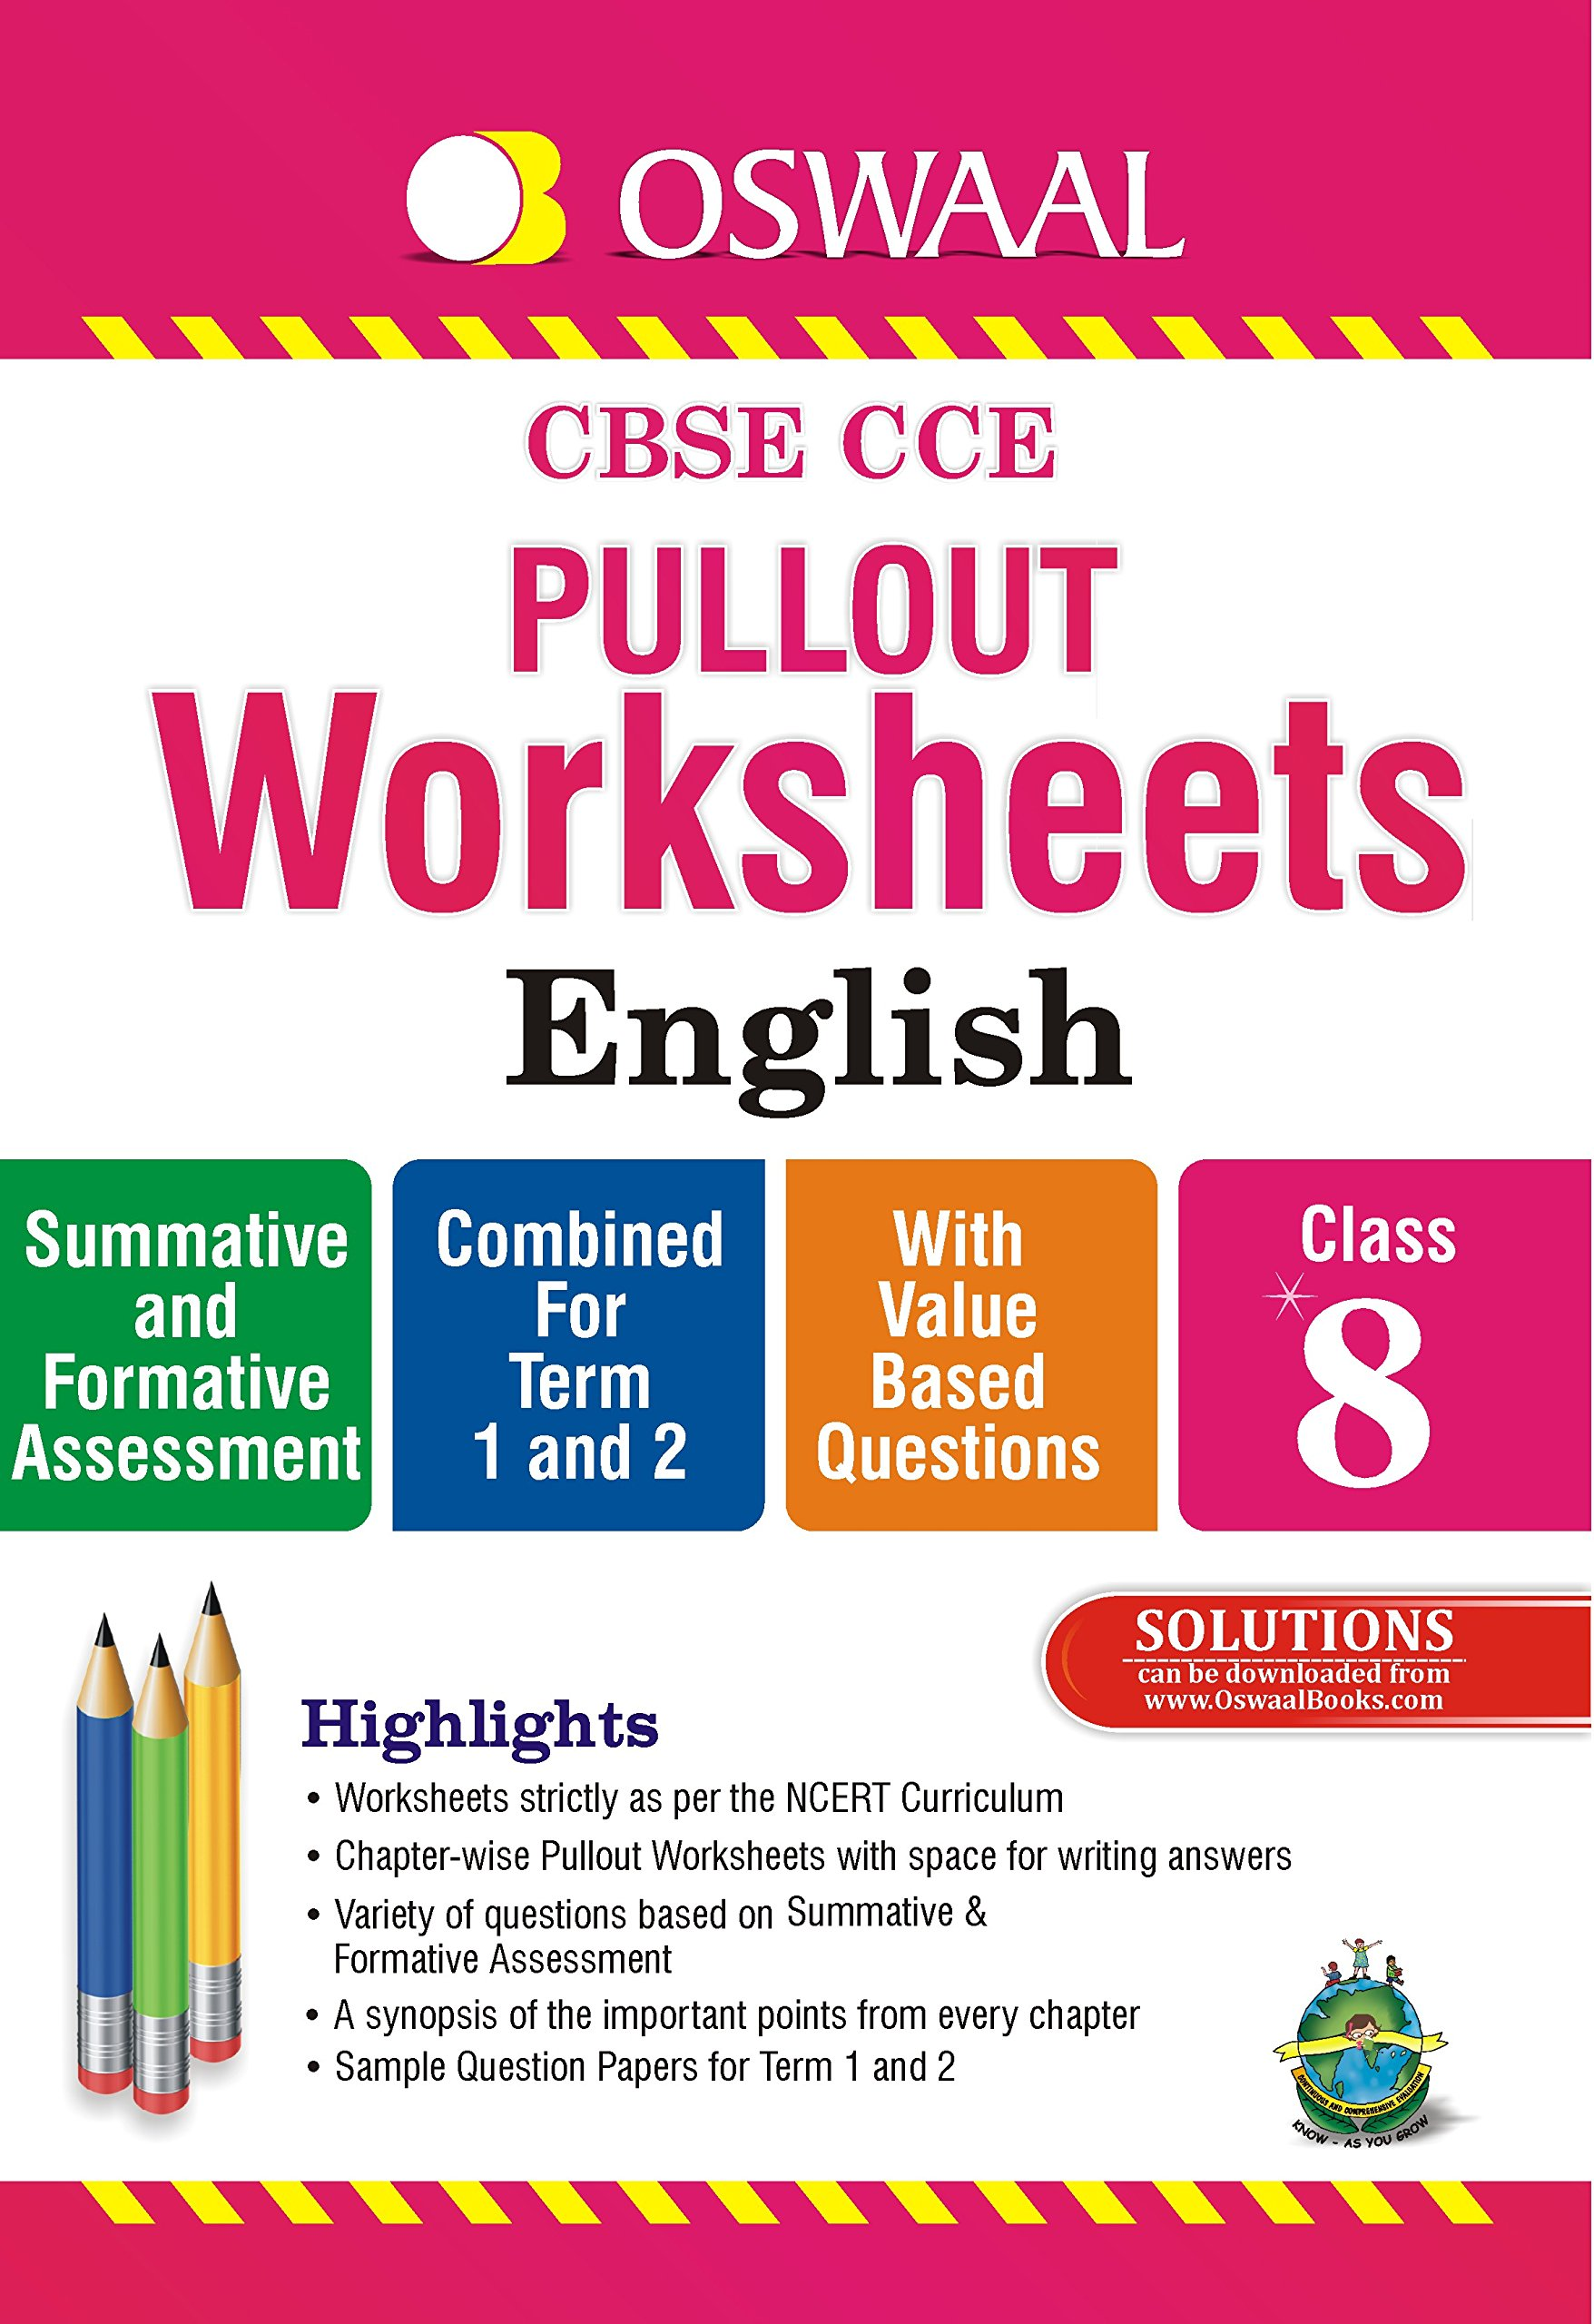 Oswaal CBSE CCE Pullout Worksheets: English for Class 8 Old Edition